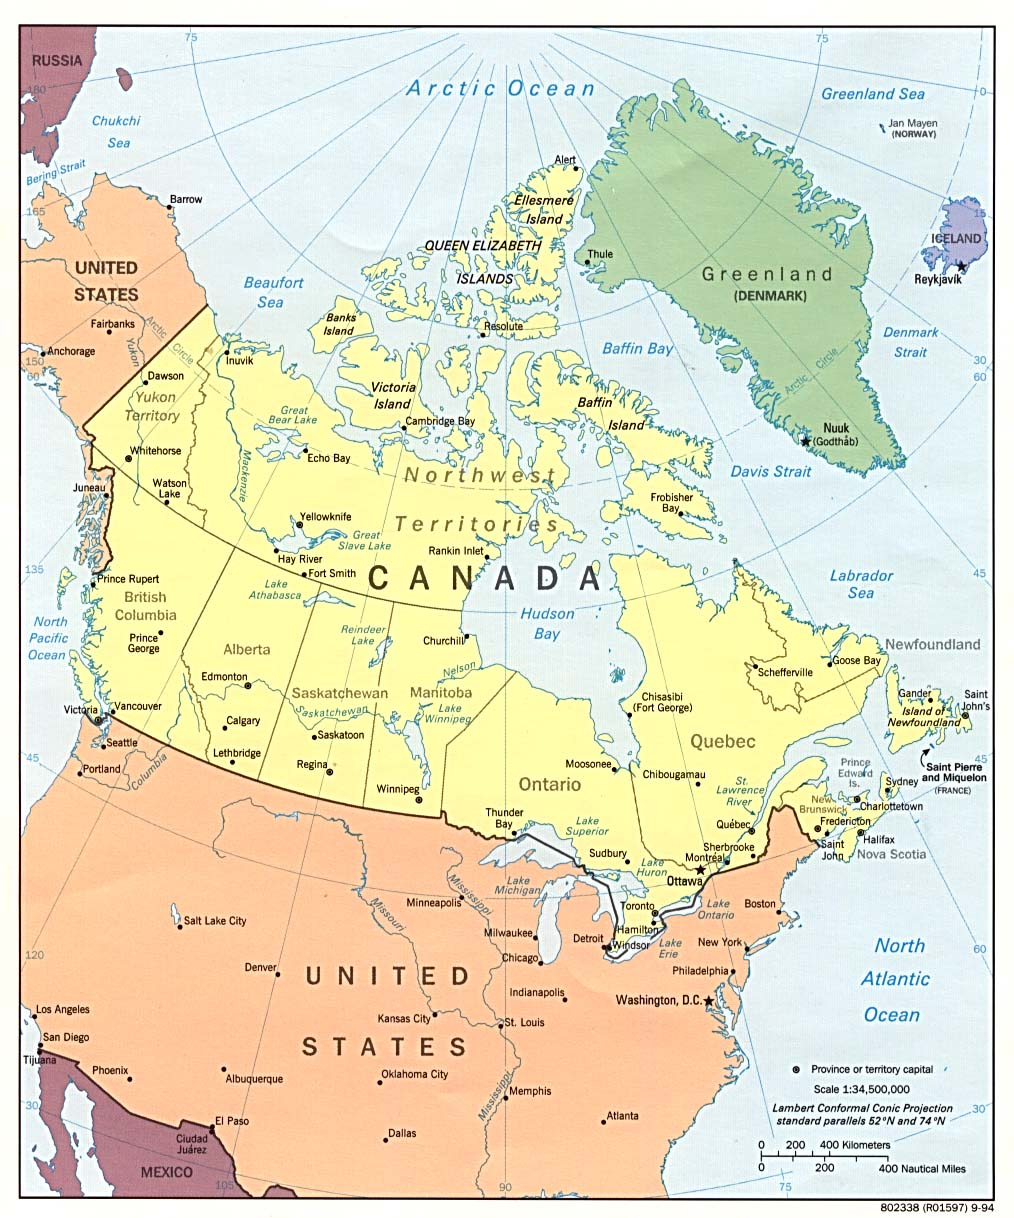 Map Of Canada With Cities And Provinces.Canada Maps Perry Castaneda Map Collection Ut Library Online